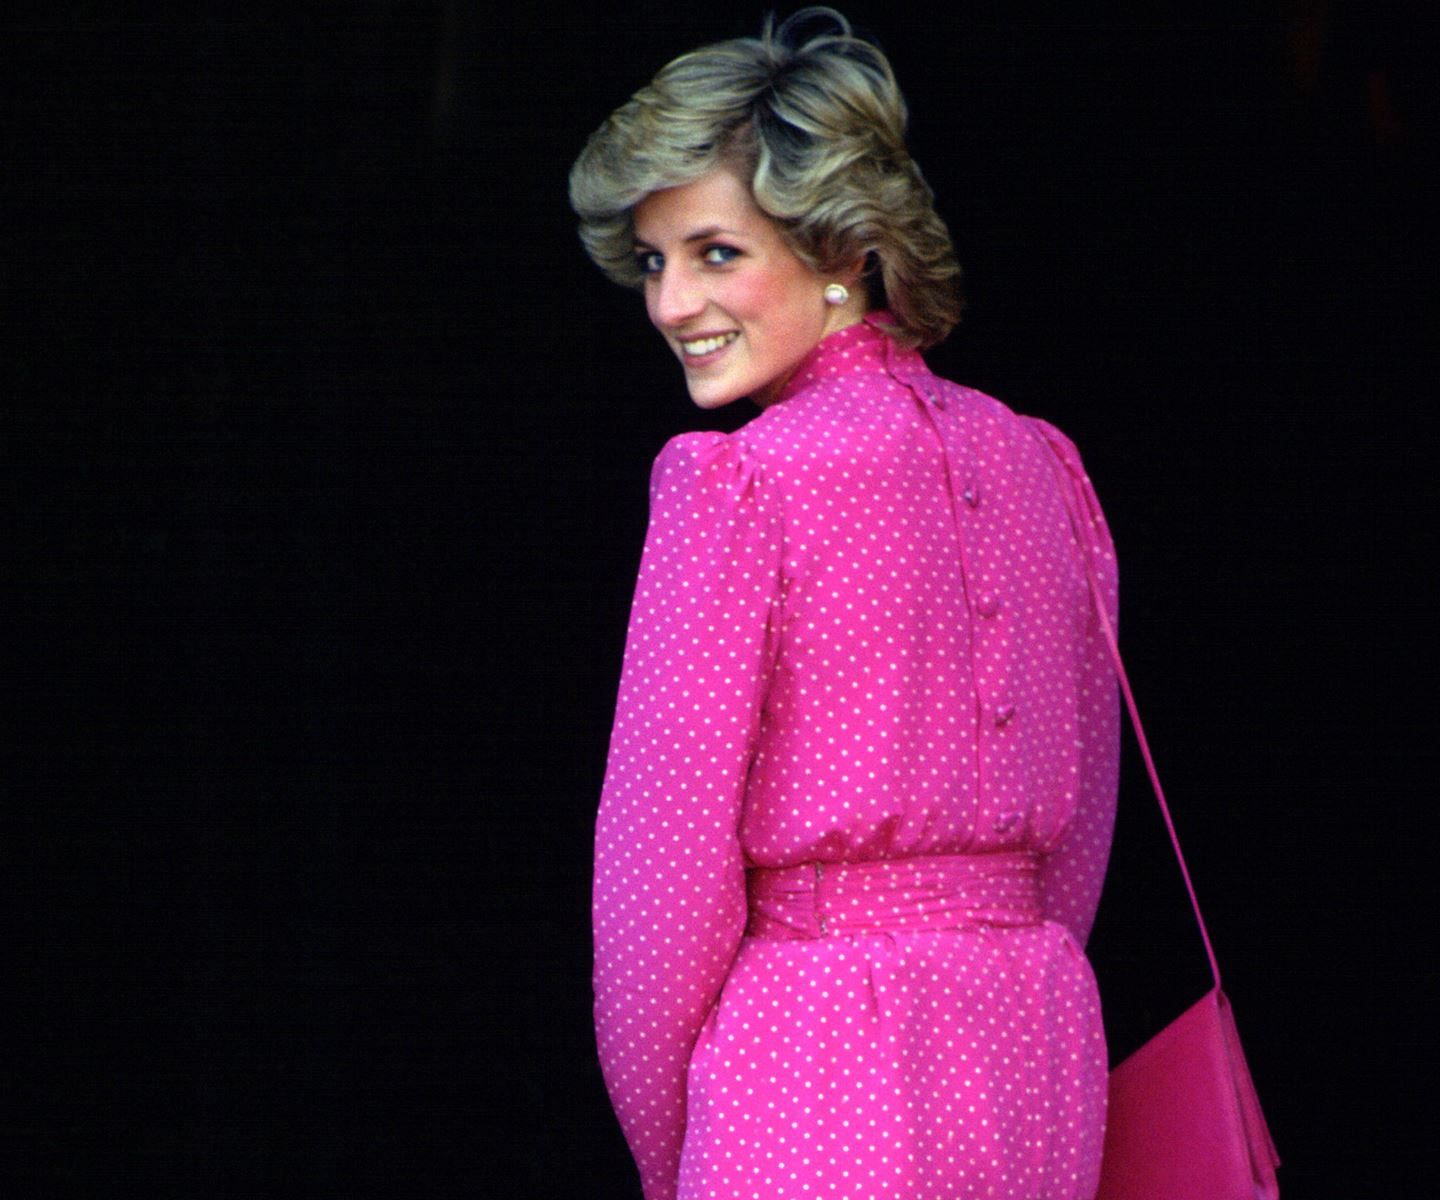 Remembering Princess Diana 19 years after her death